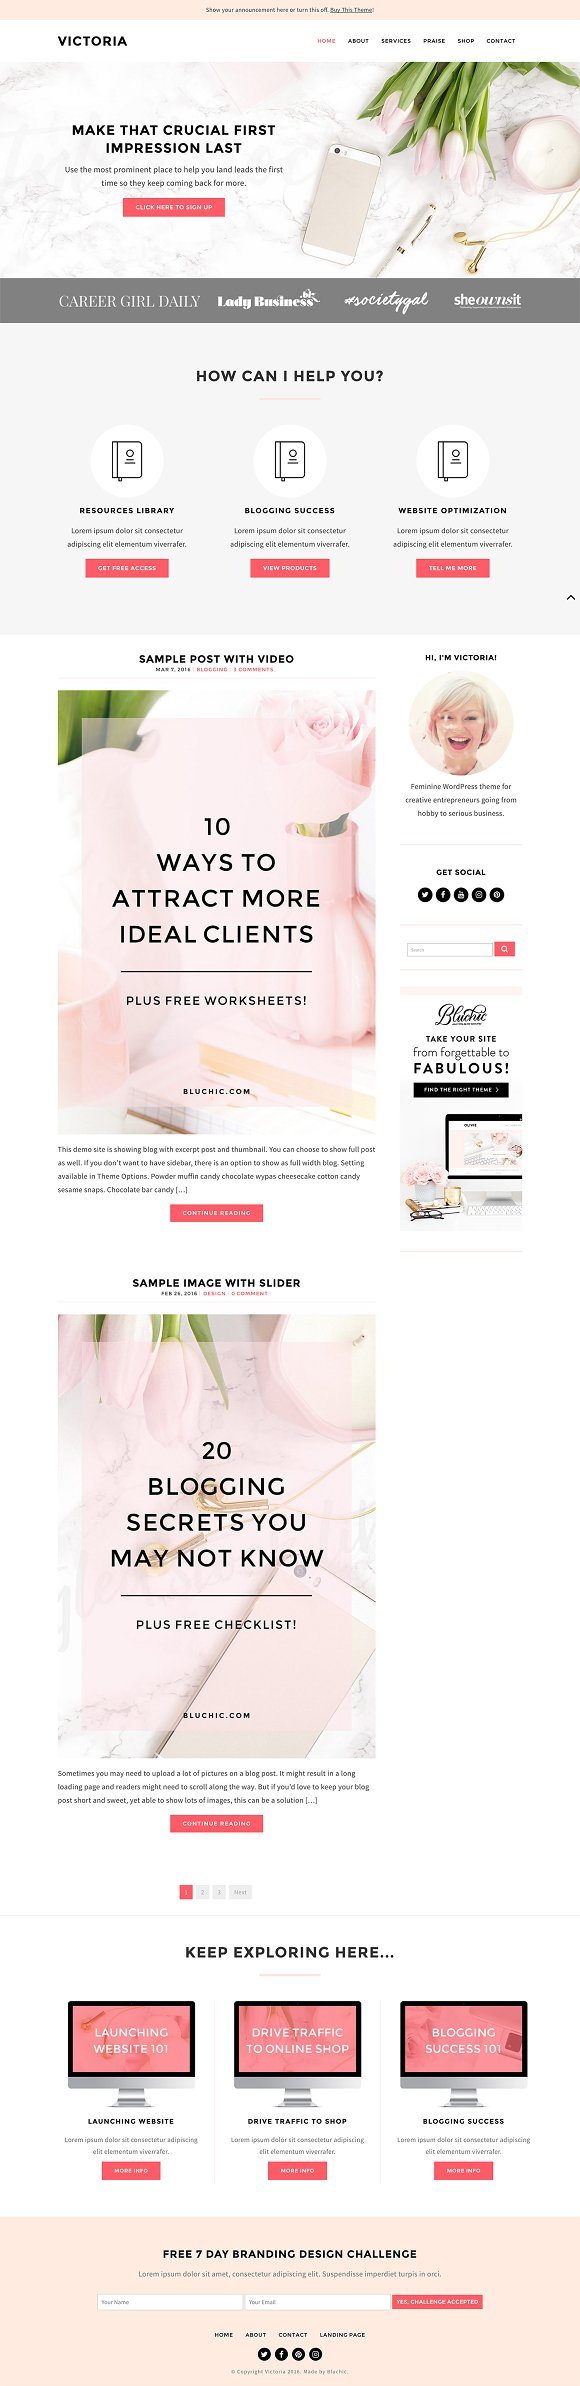 Victoria - Blog & eCommerce Theme